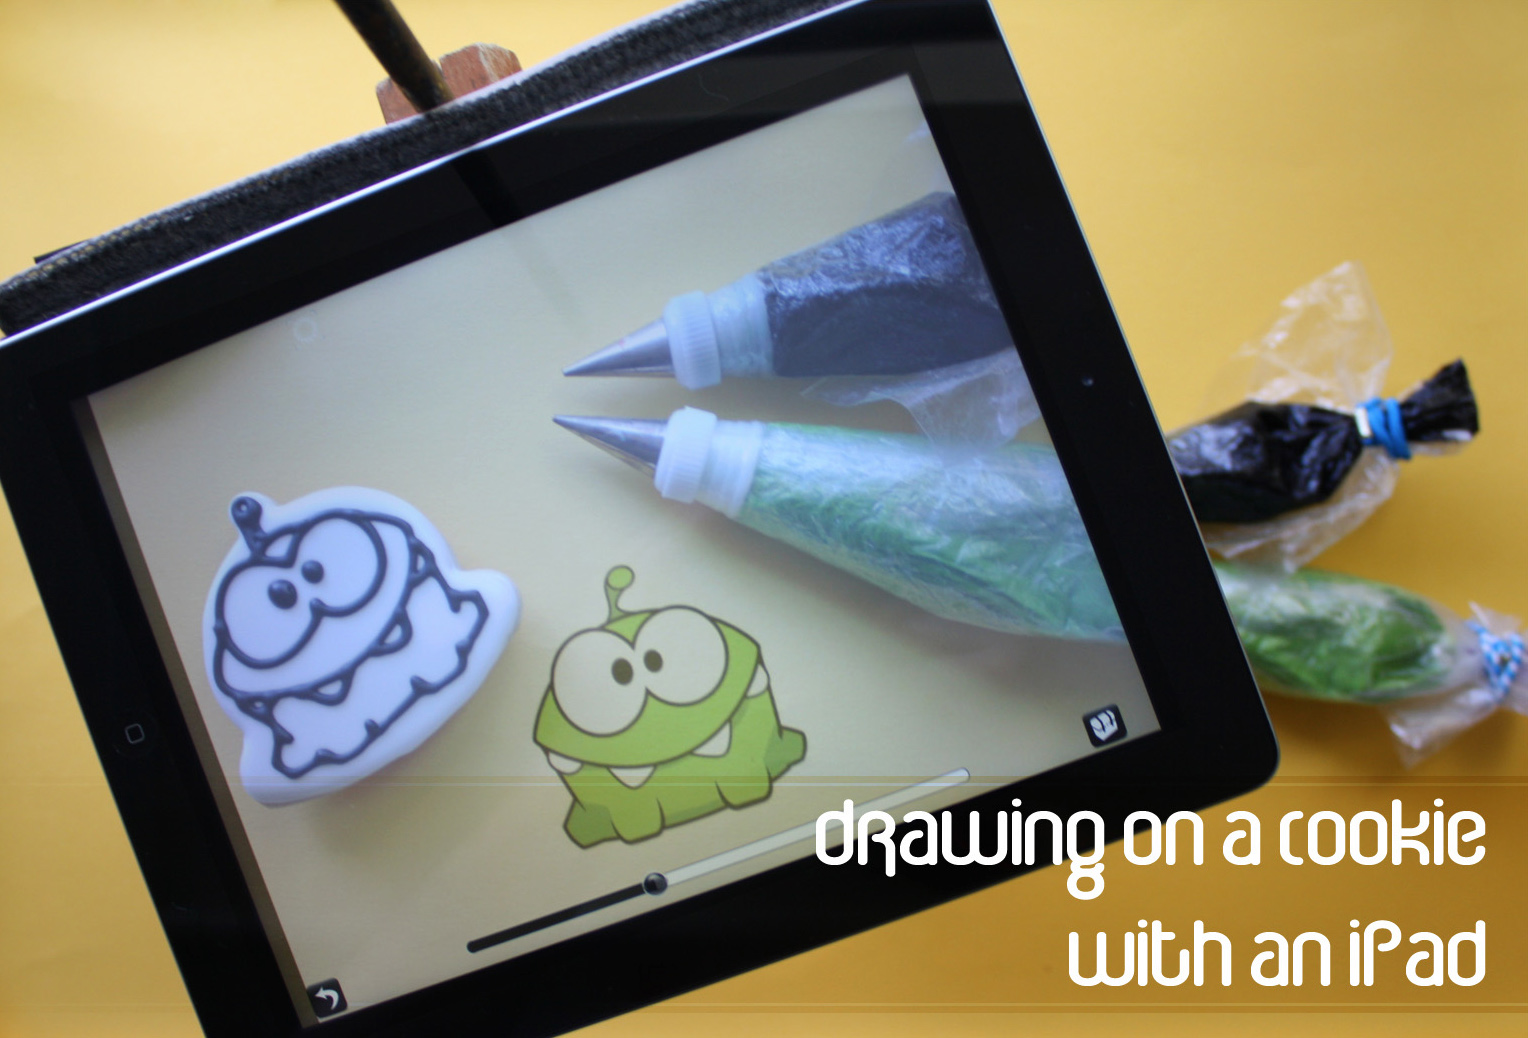 how to draw on a cookie with an ipad